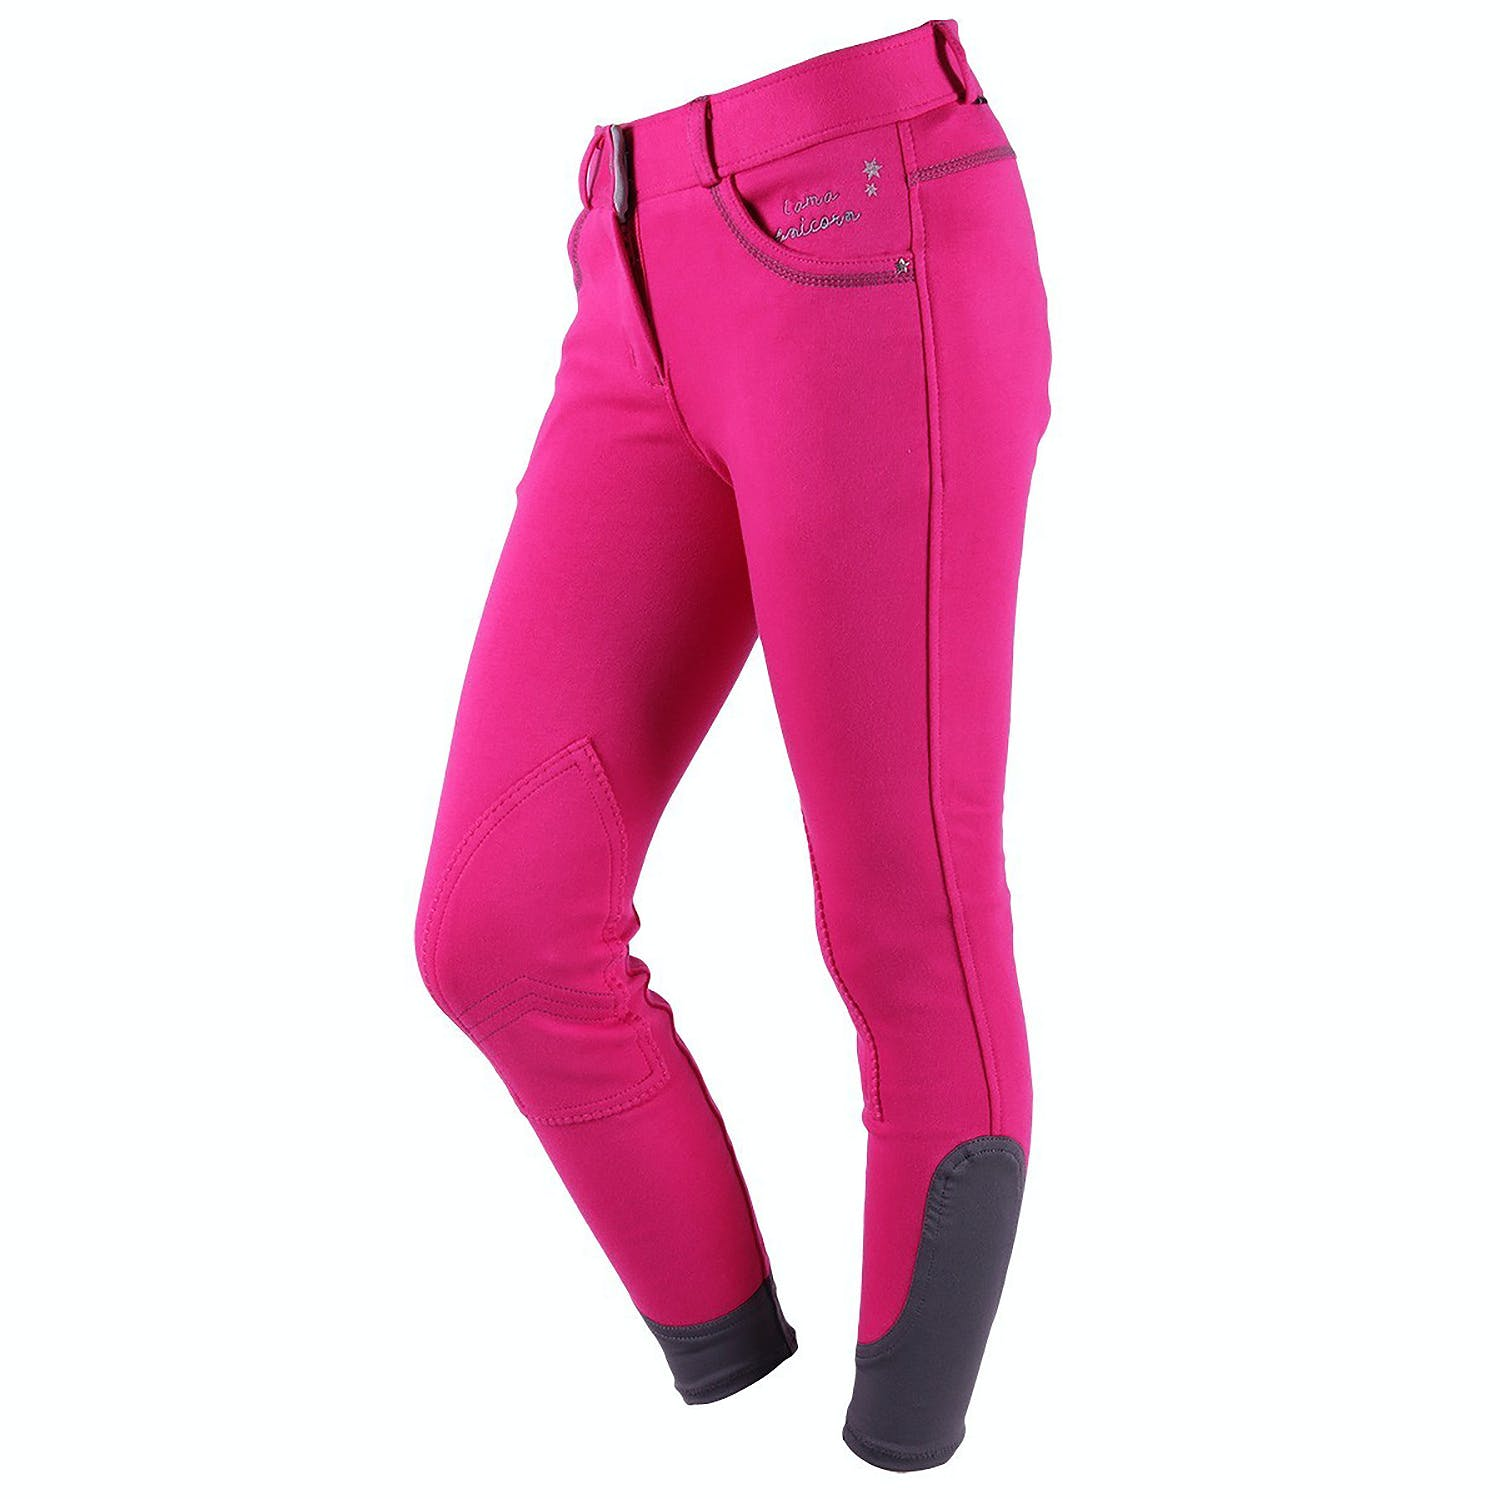 Qhp Girls Lola Riding Breeches From Rideaway